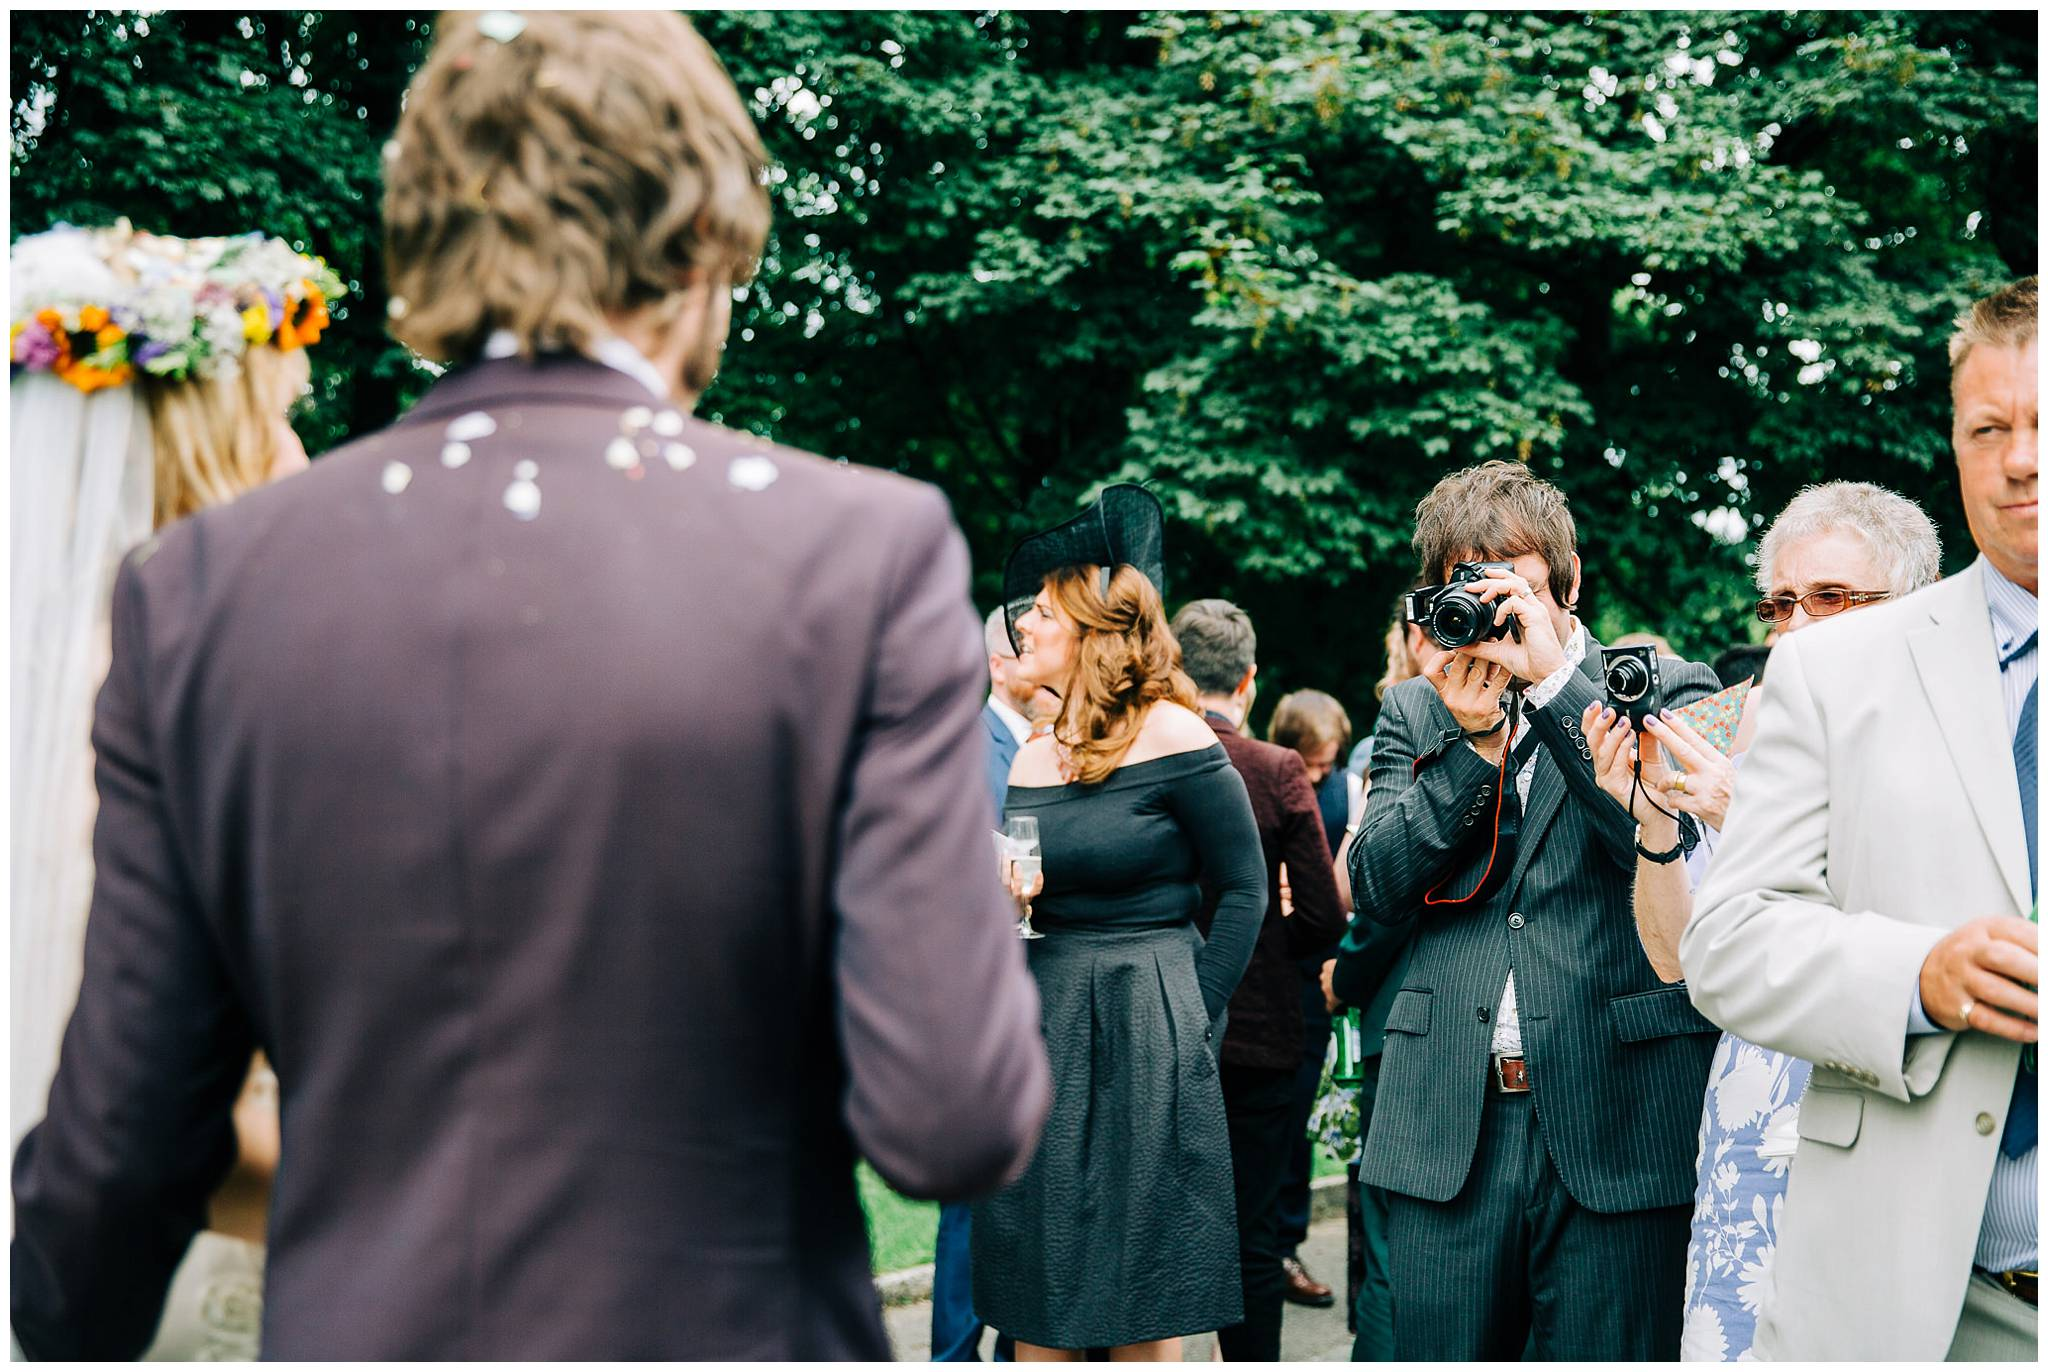 guest with camera talking photo of bride and groom